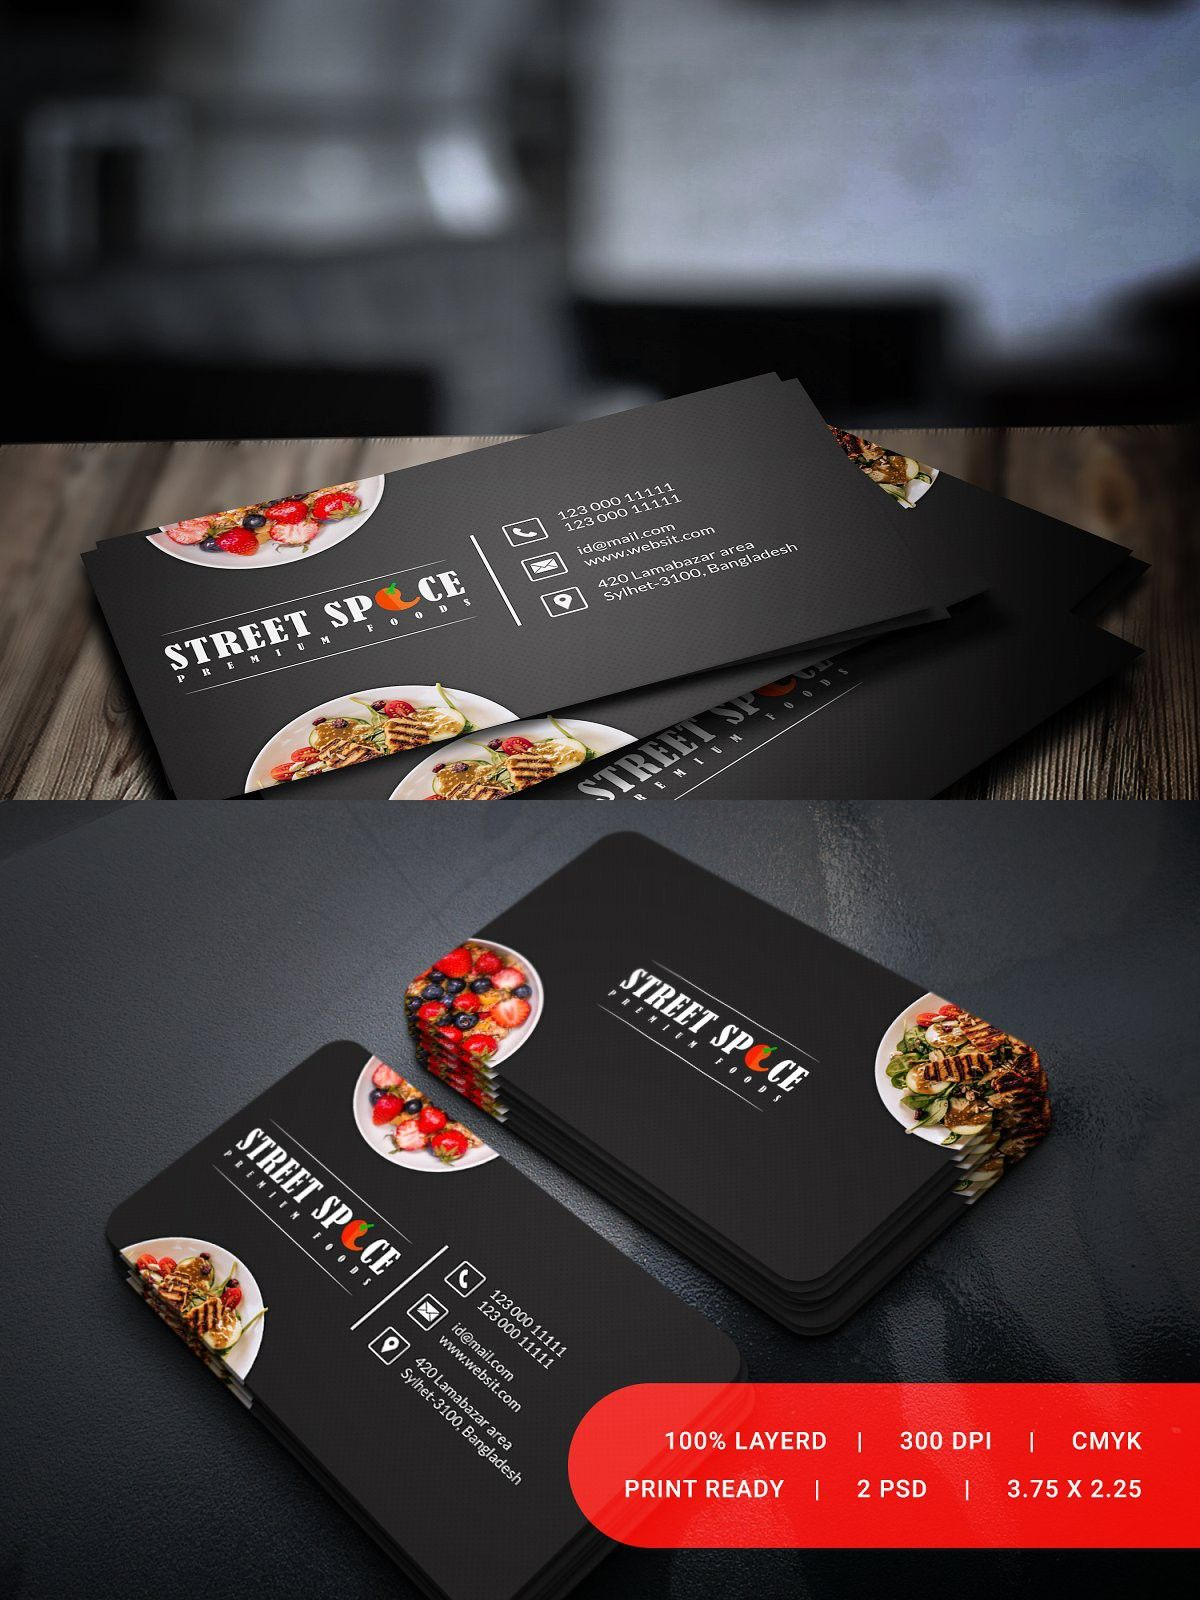 Food Business Card Street Spice Food Business Card Catering Business Cards Food Business Card Design